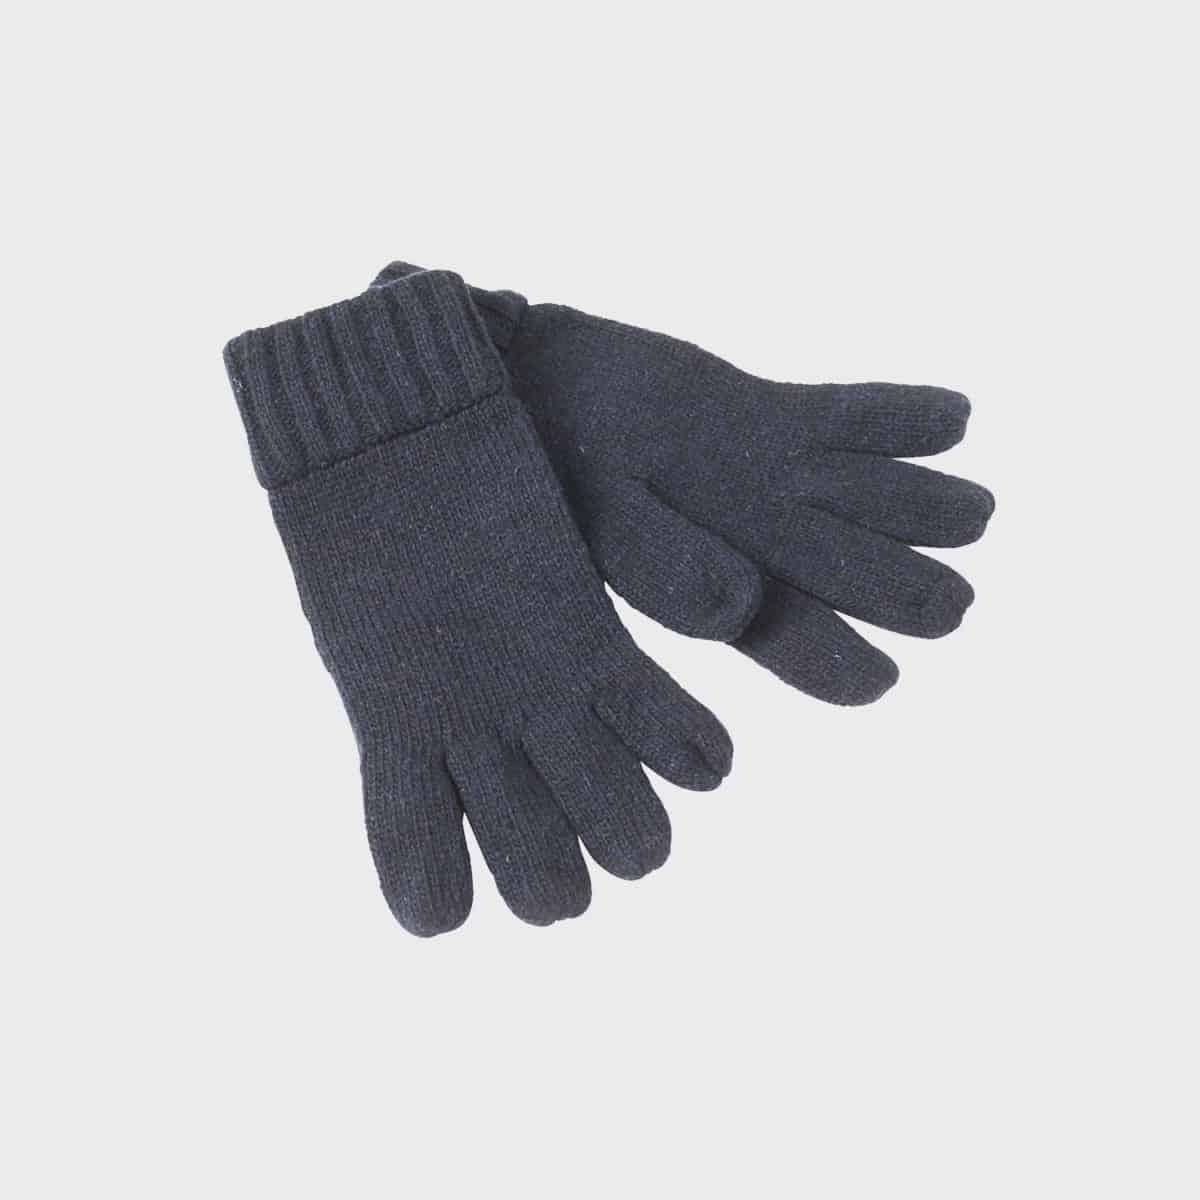 basic-melange-gloves-black-navy-kaufen-besticken_stickmanufaktur